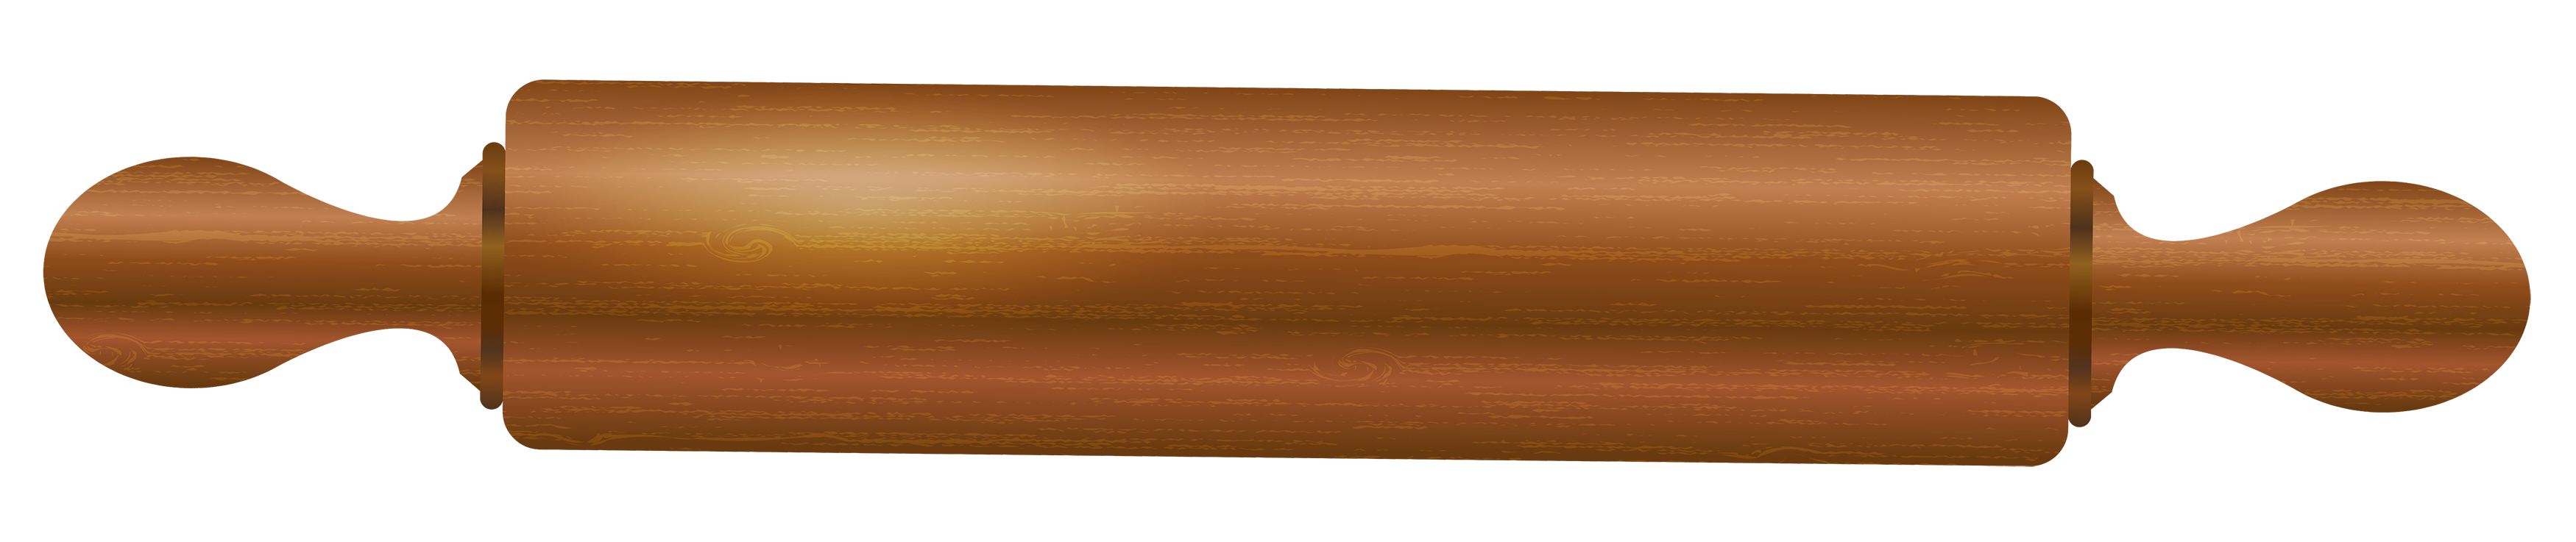 Wooden Rolling Pin PNG Clipart.